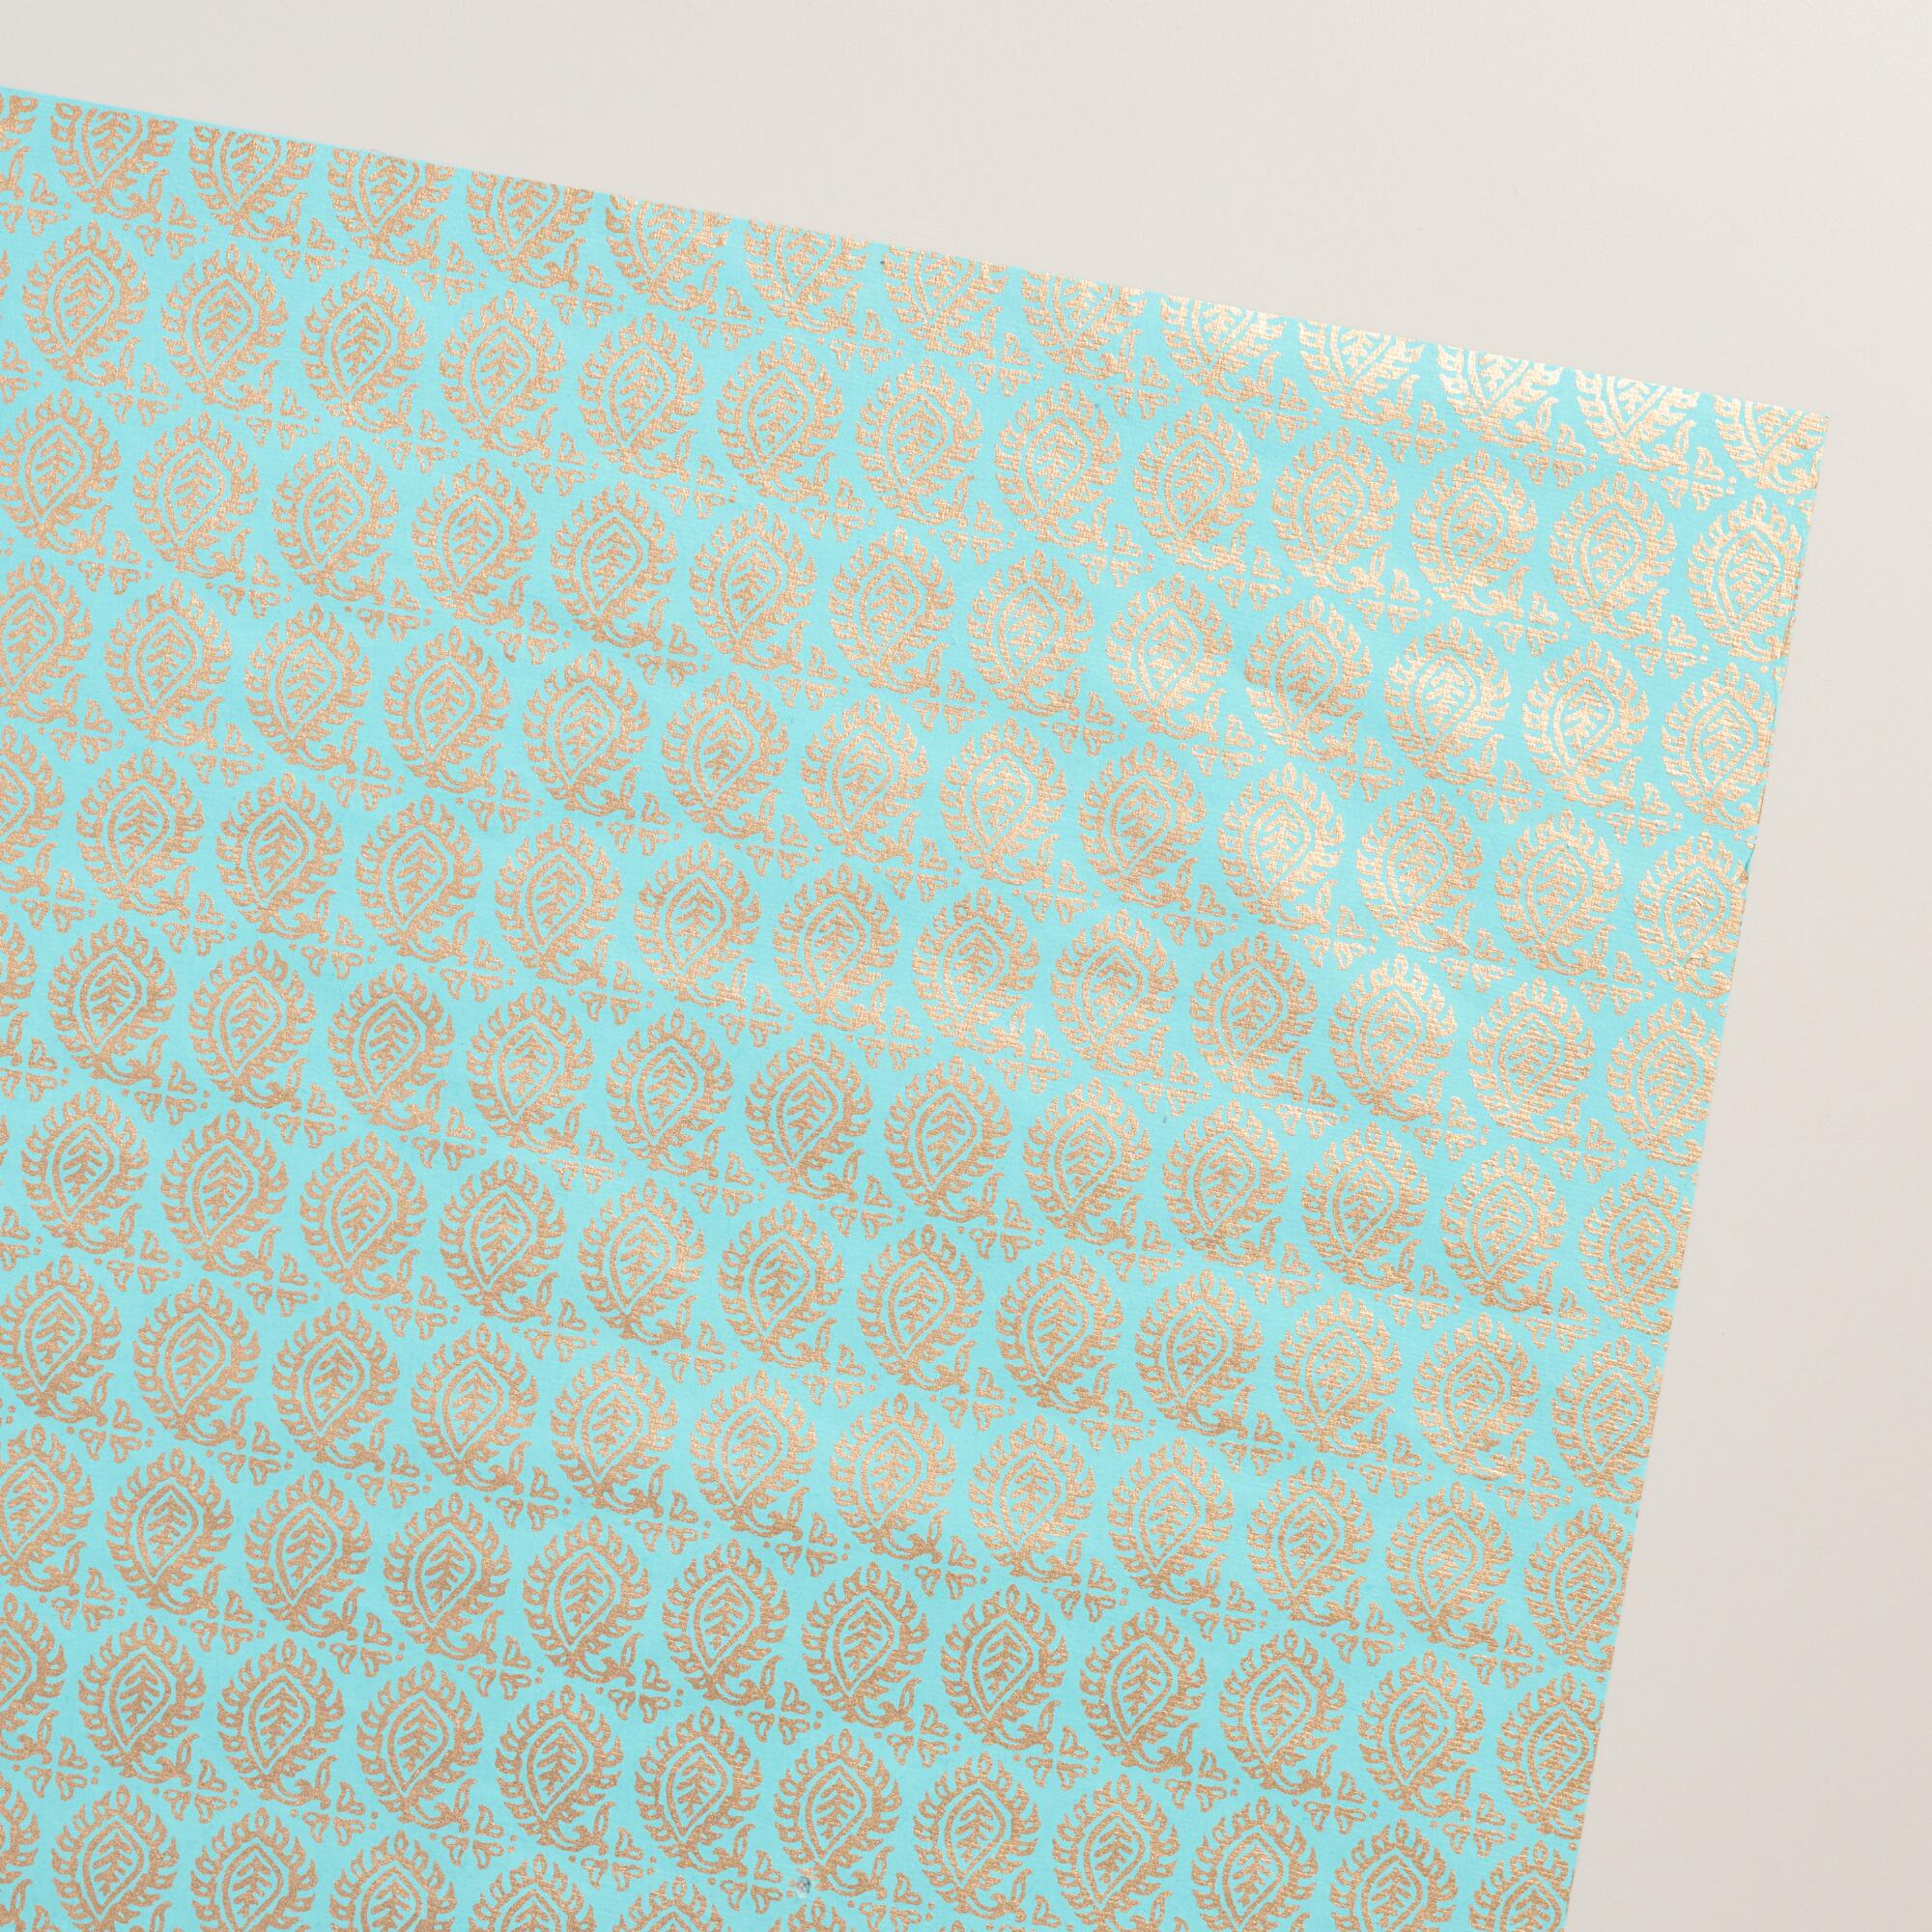 wrapping paper green - photo #18